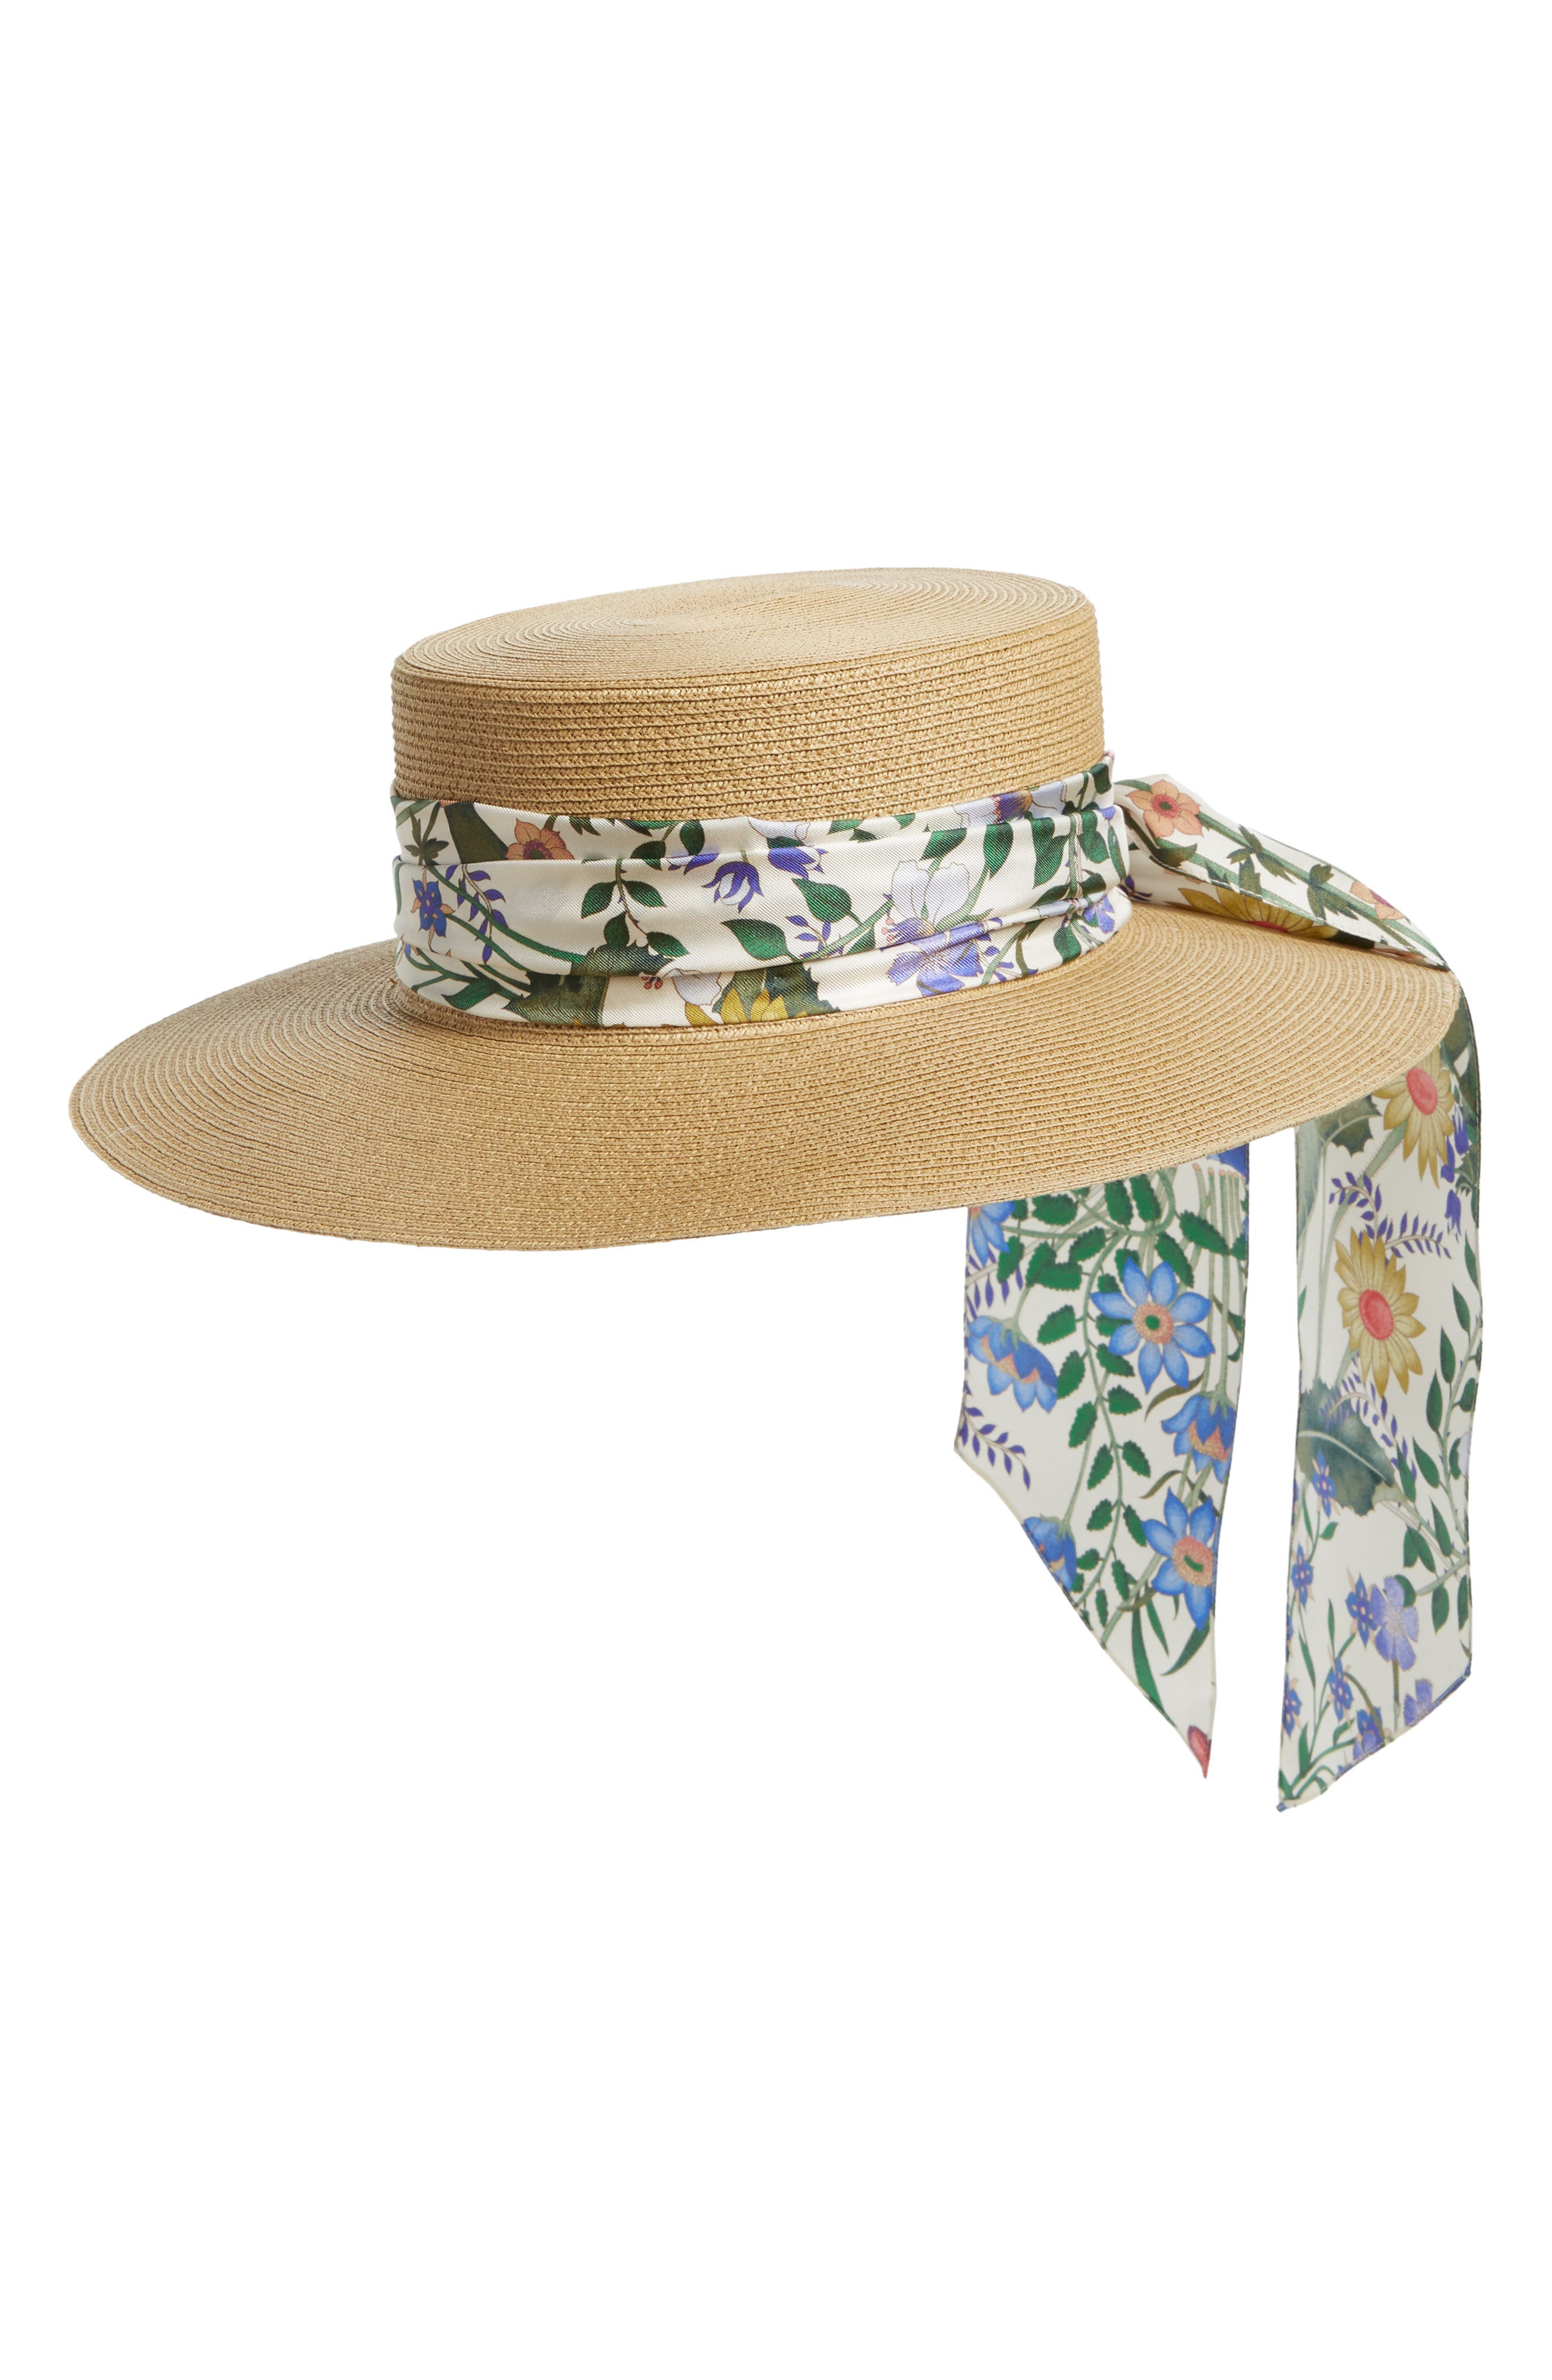 GUCCI, Alba Straw Hat, Main thumbnail 1, color, ROPE/ WHITE